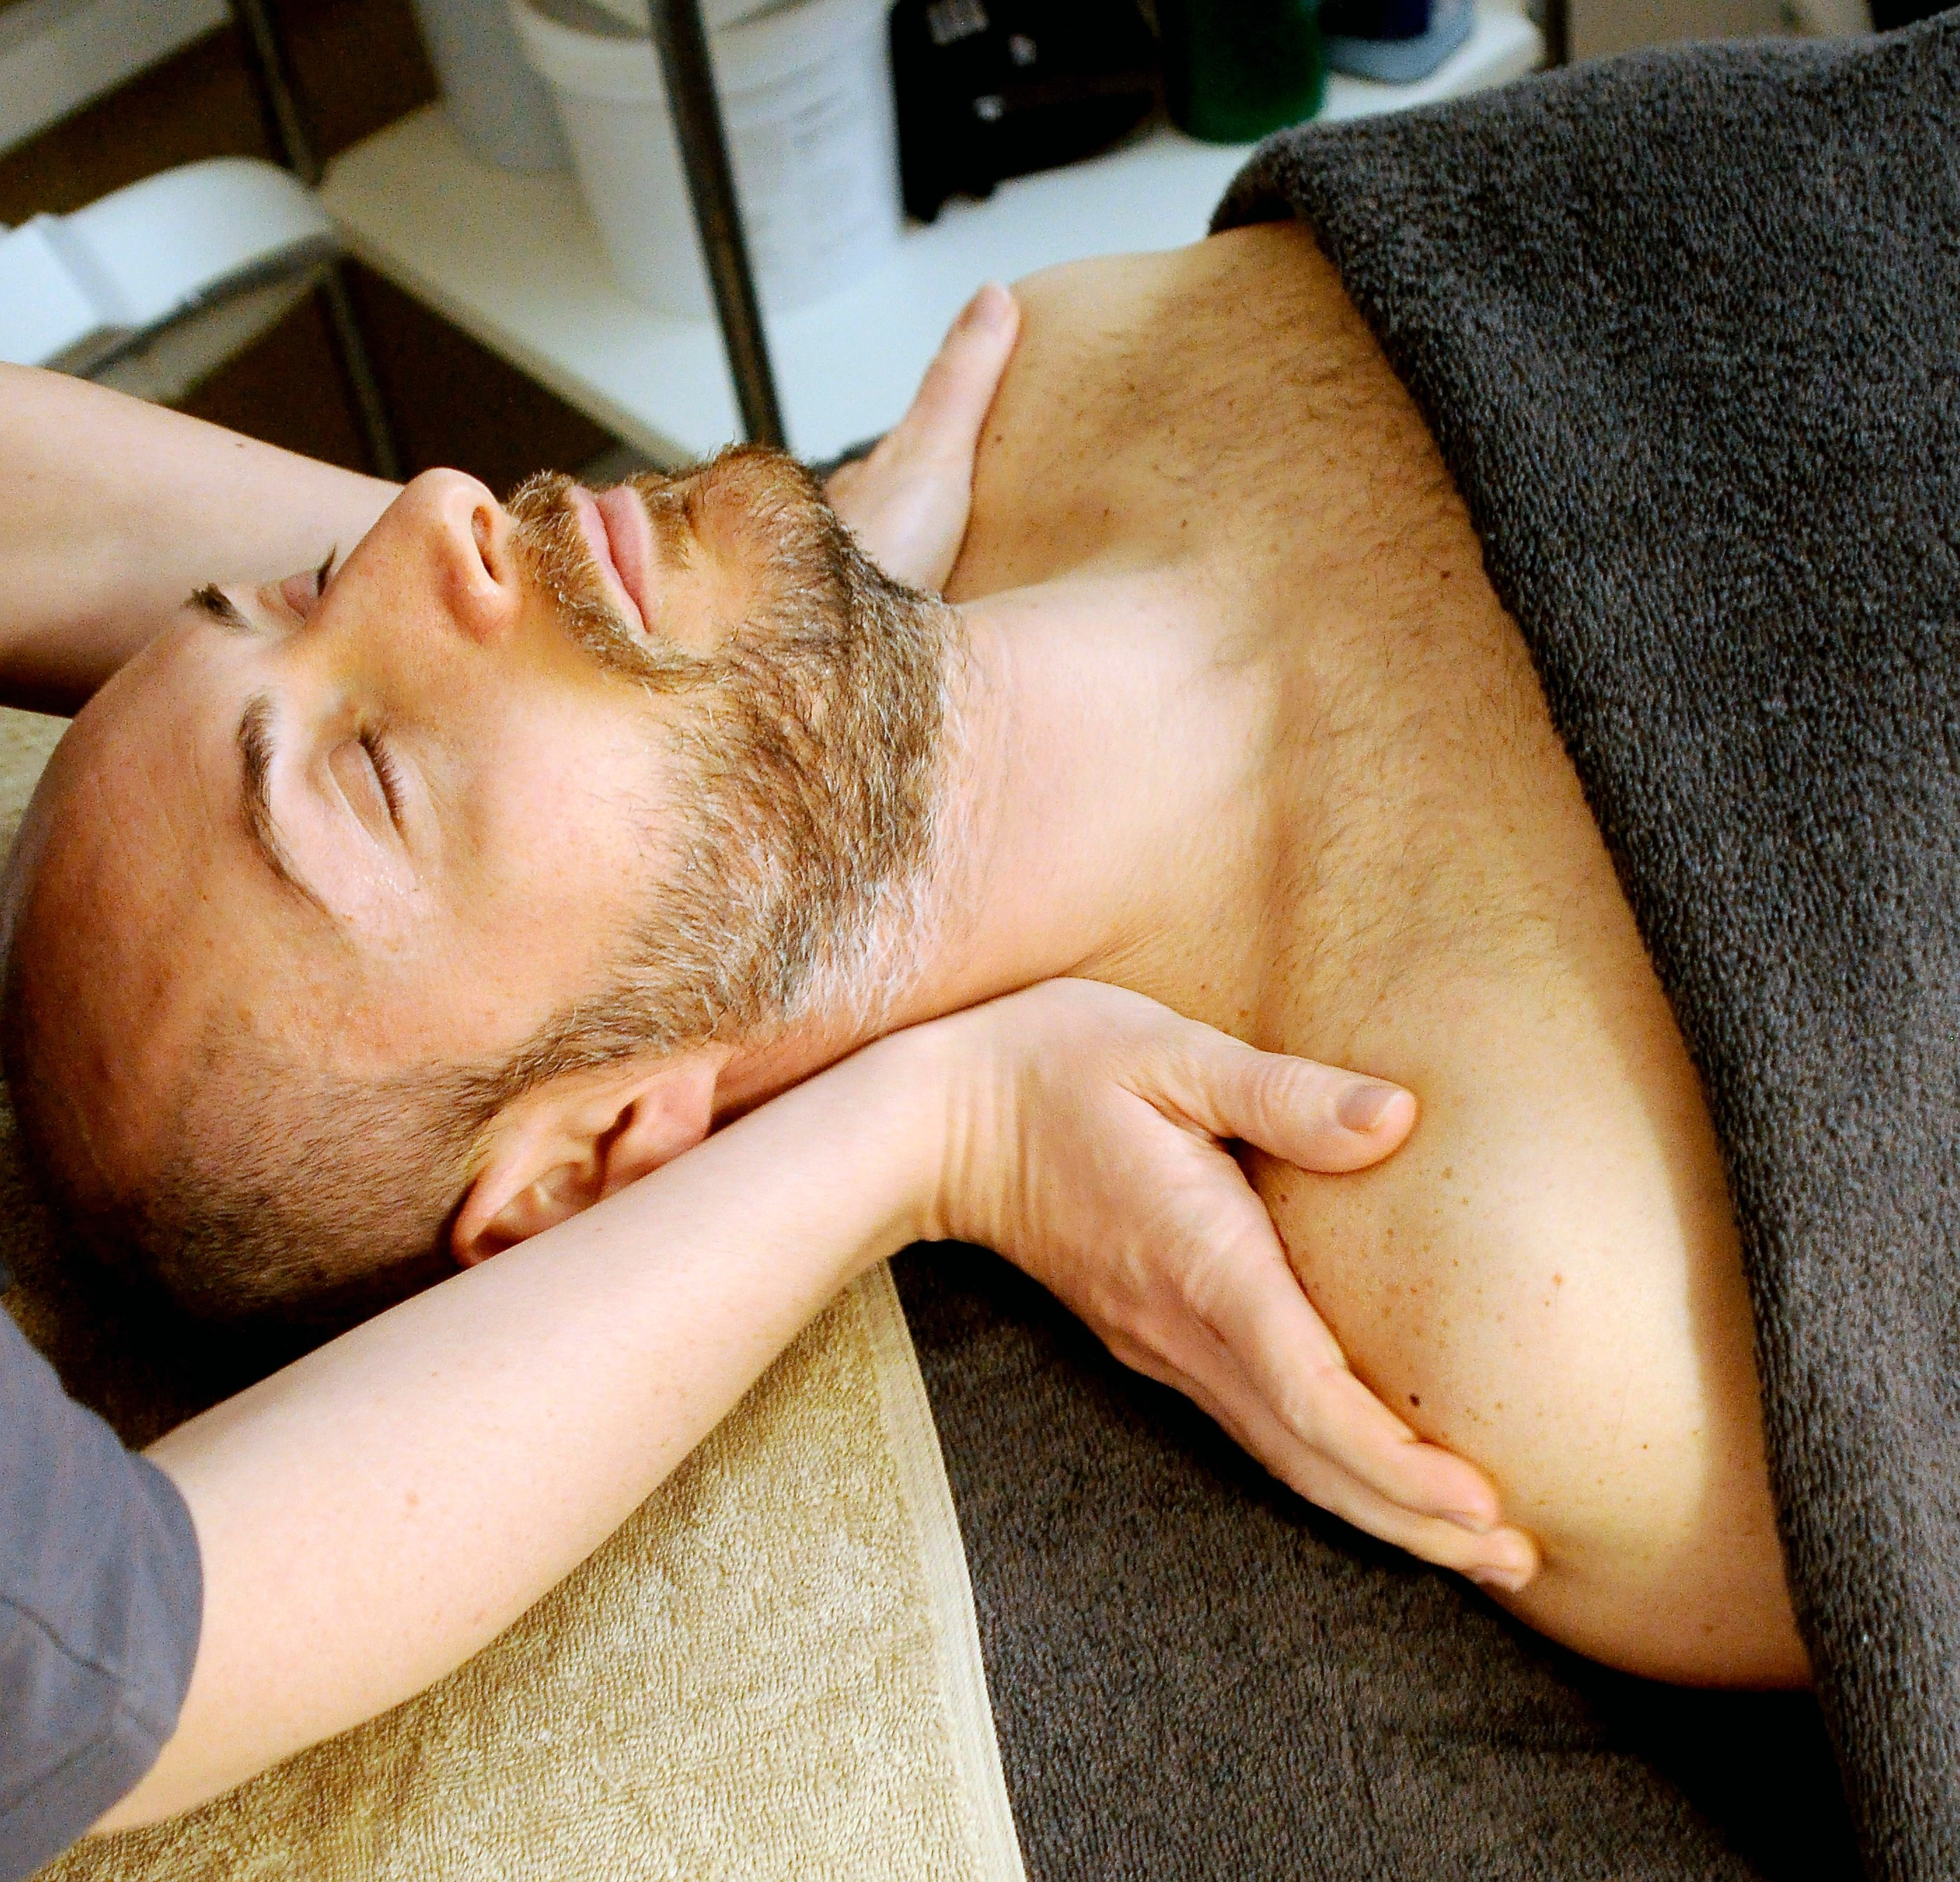 Everyone needs a pamper every now and again. Treat them to a massage voucher!